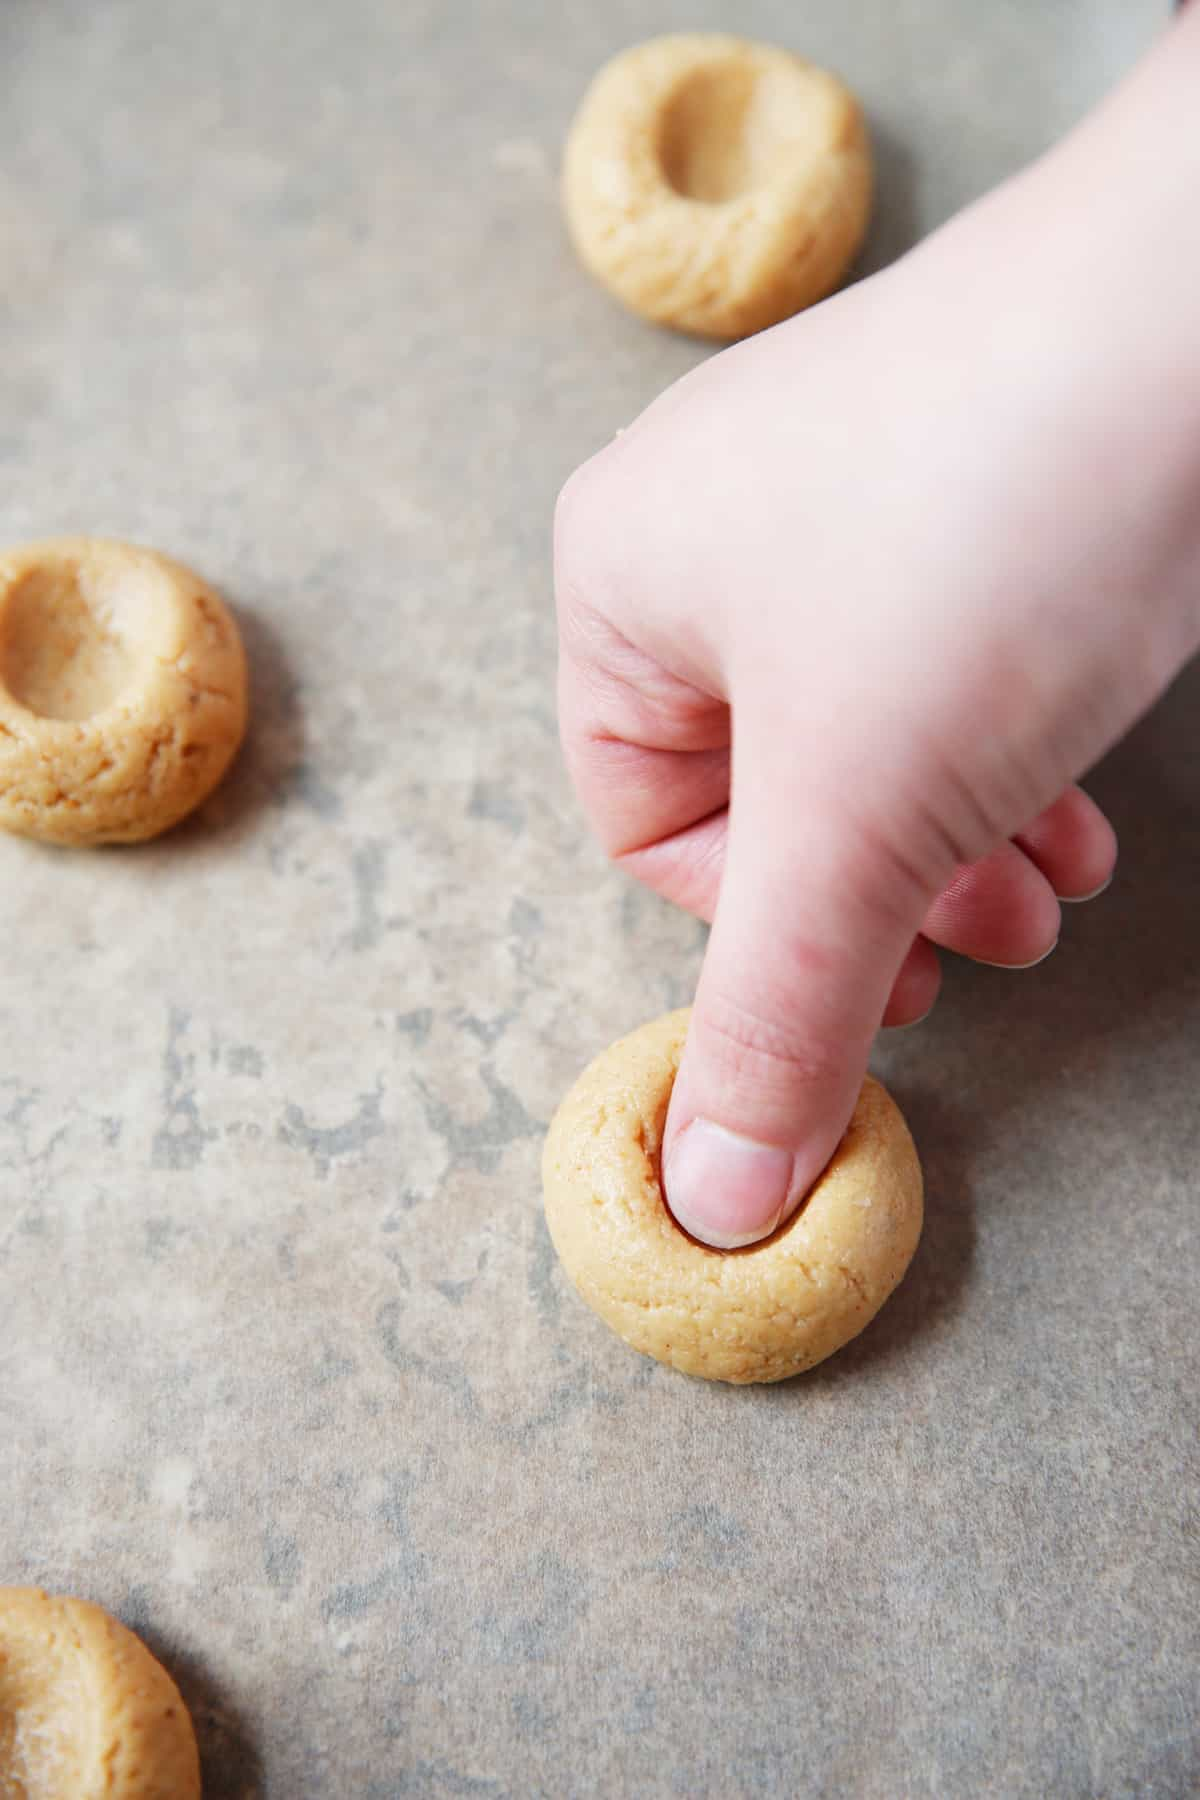 Making an indentation in gluten free peanut butter thumbprints